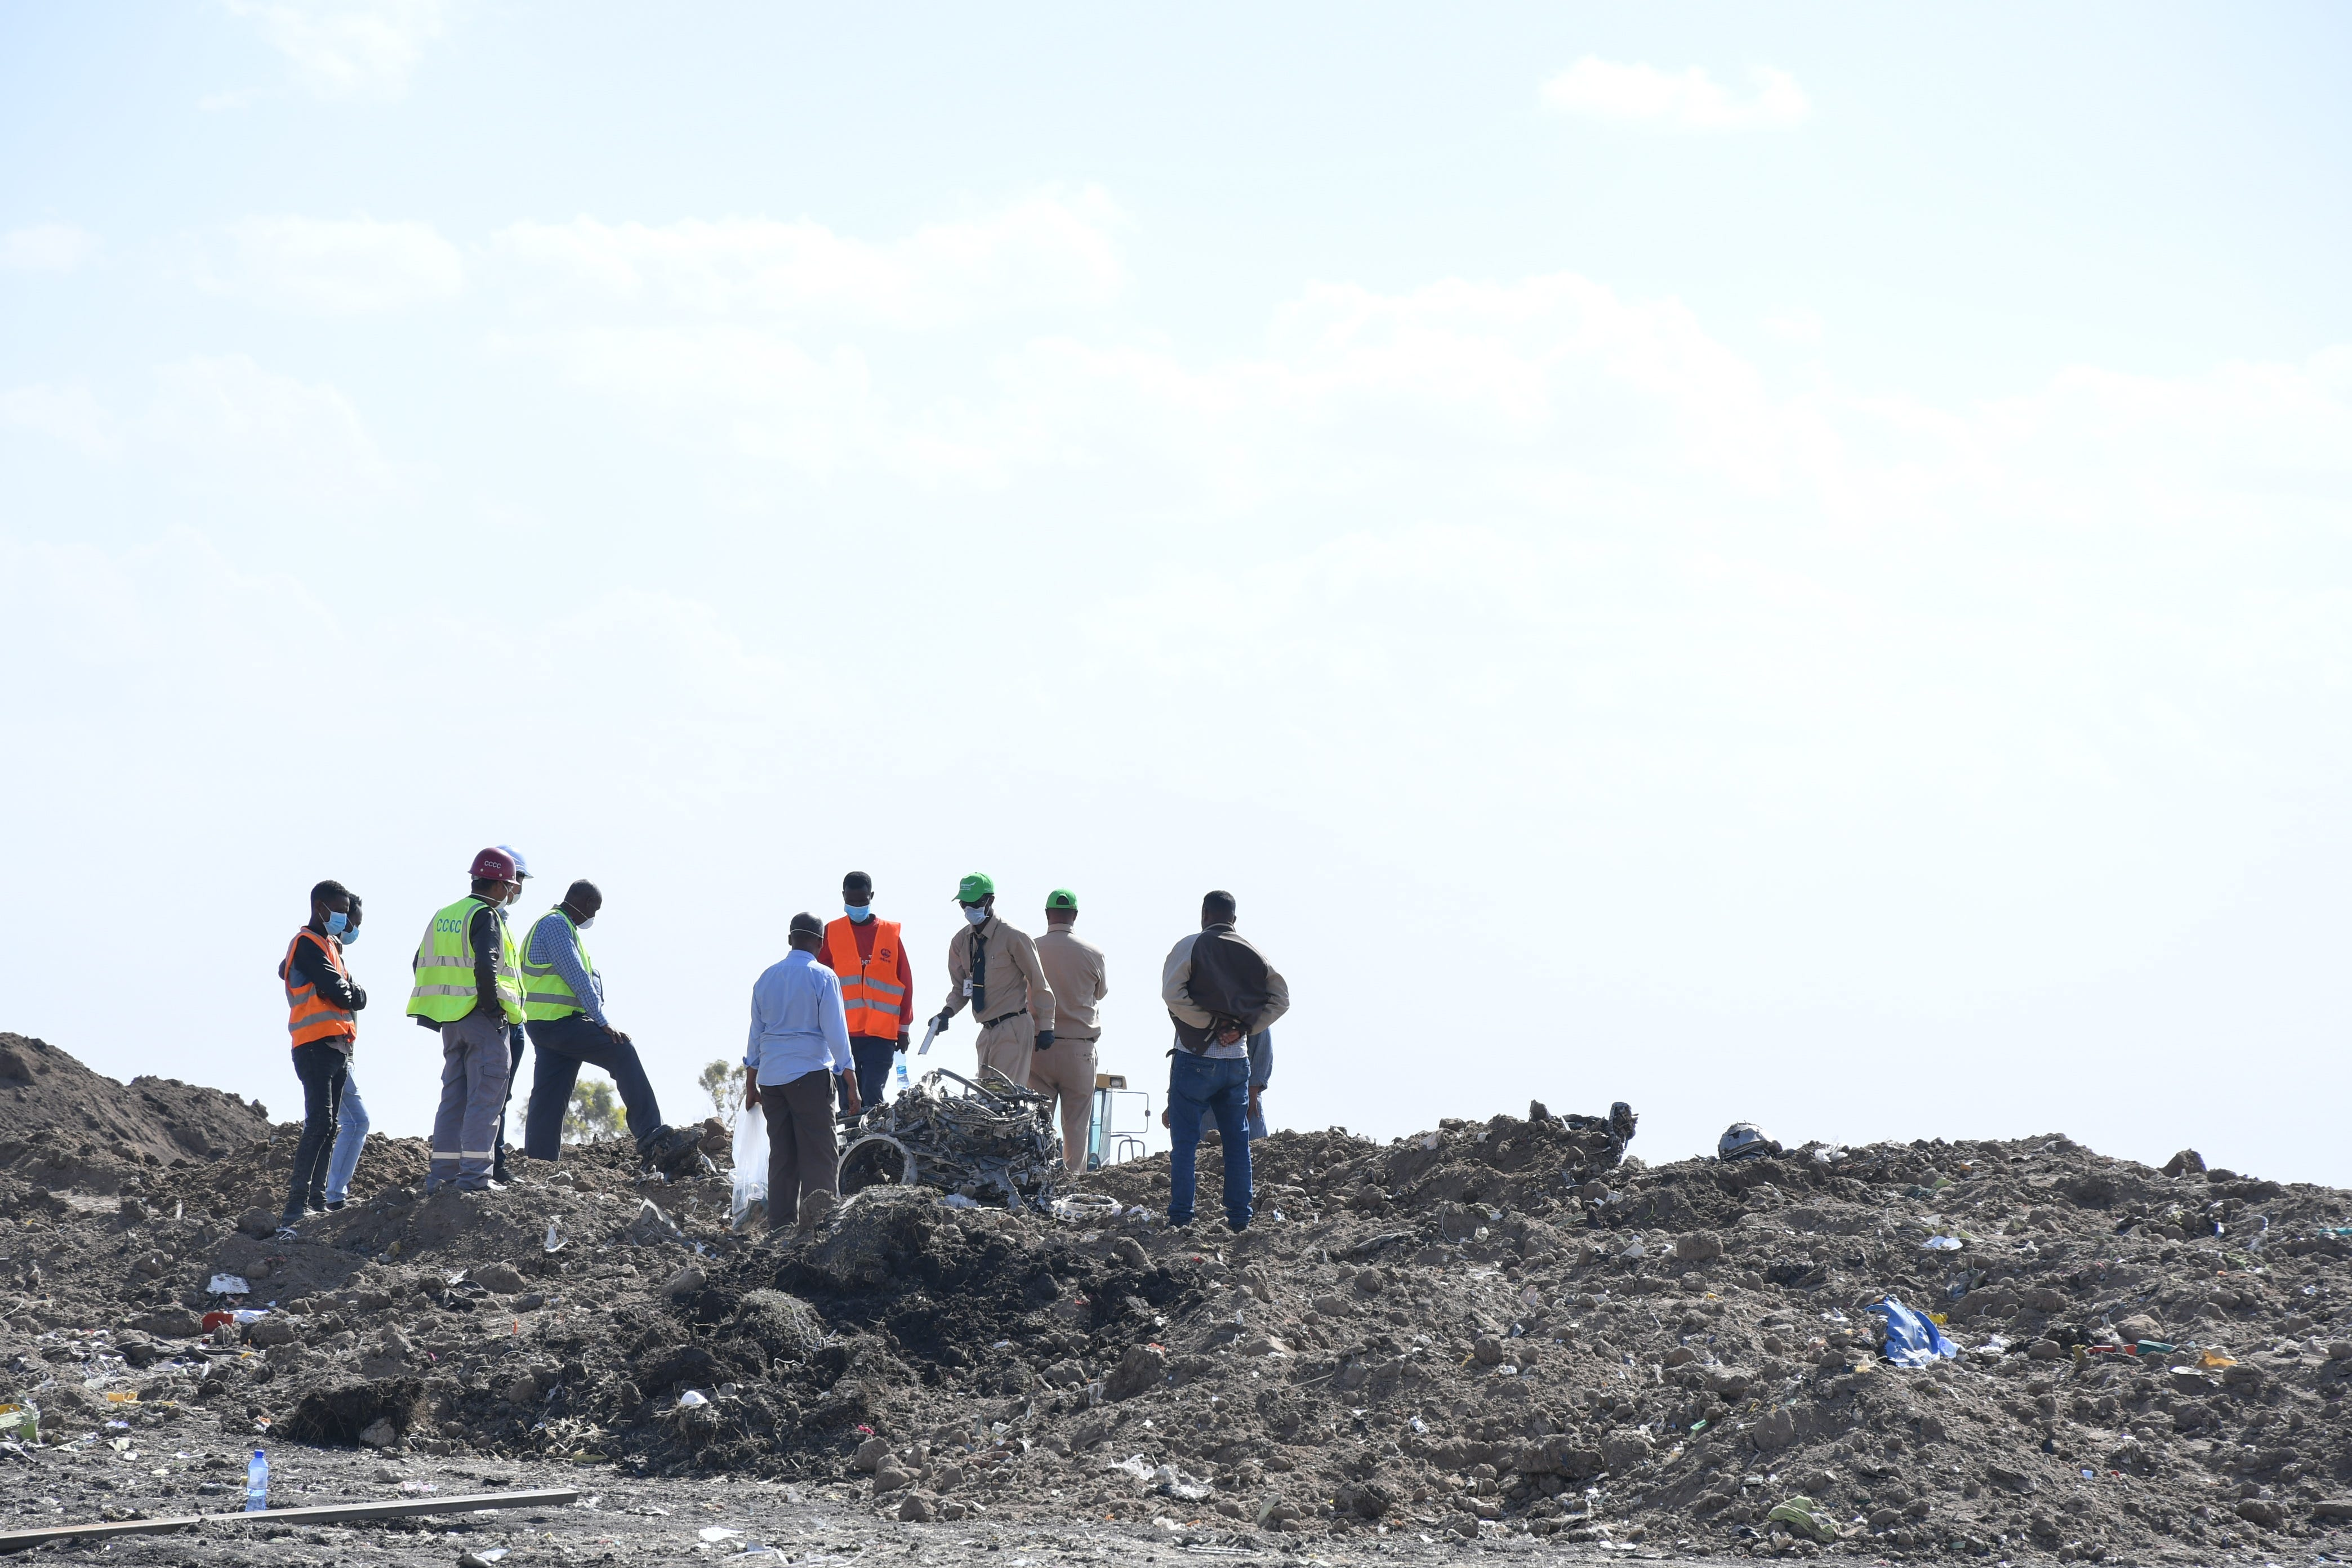 Workers search the site for pieces of the wreckage of an Ethiopia Airlines Boeing 737 Max 8 aircraft near Bishoftu, Ethiopia on March 13, 2019.